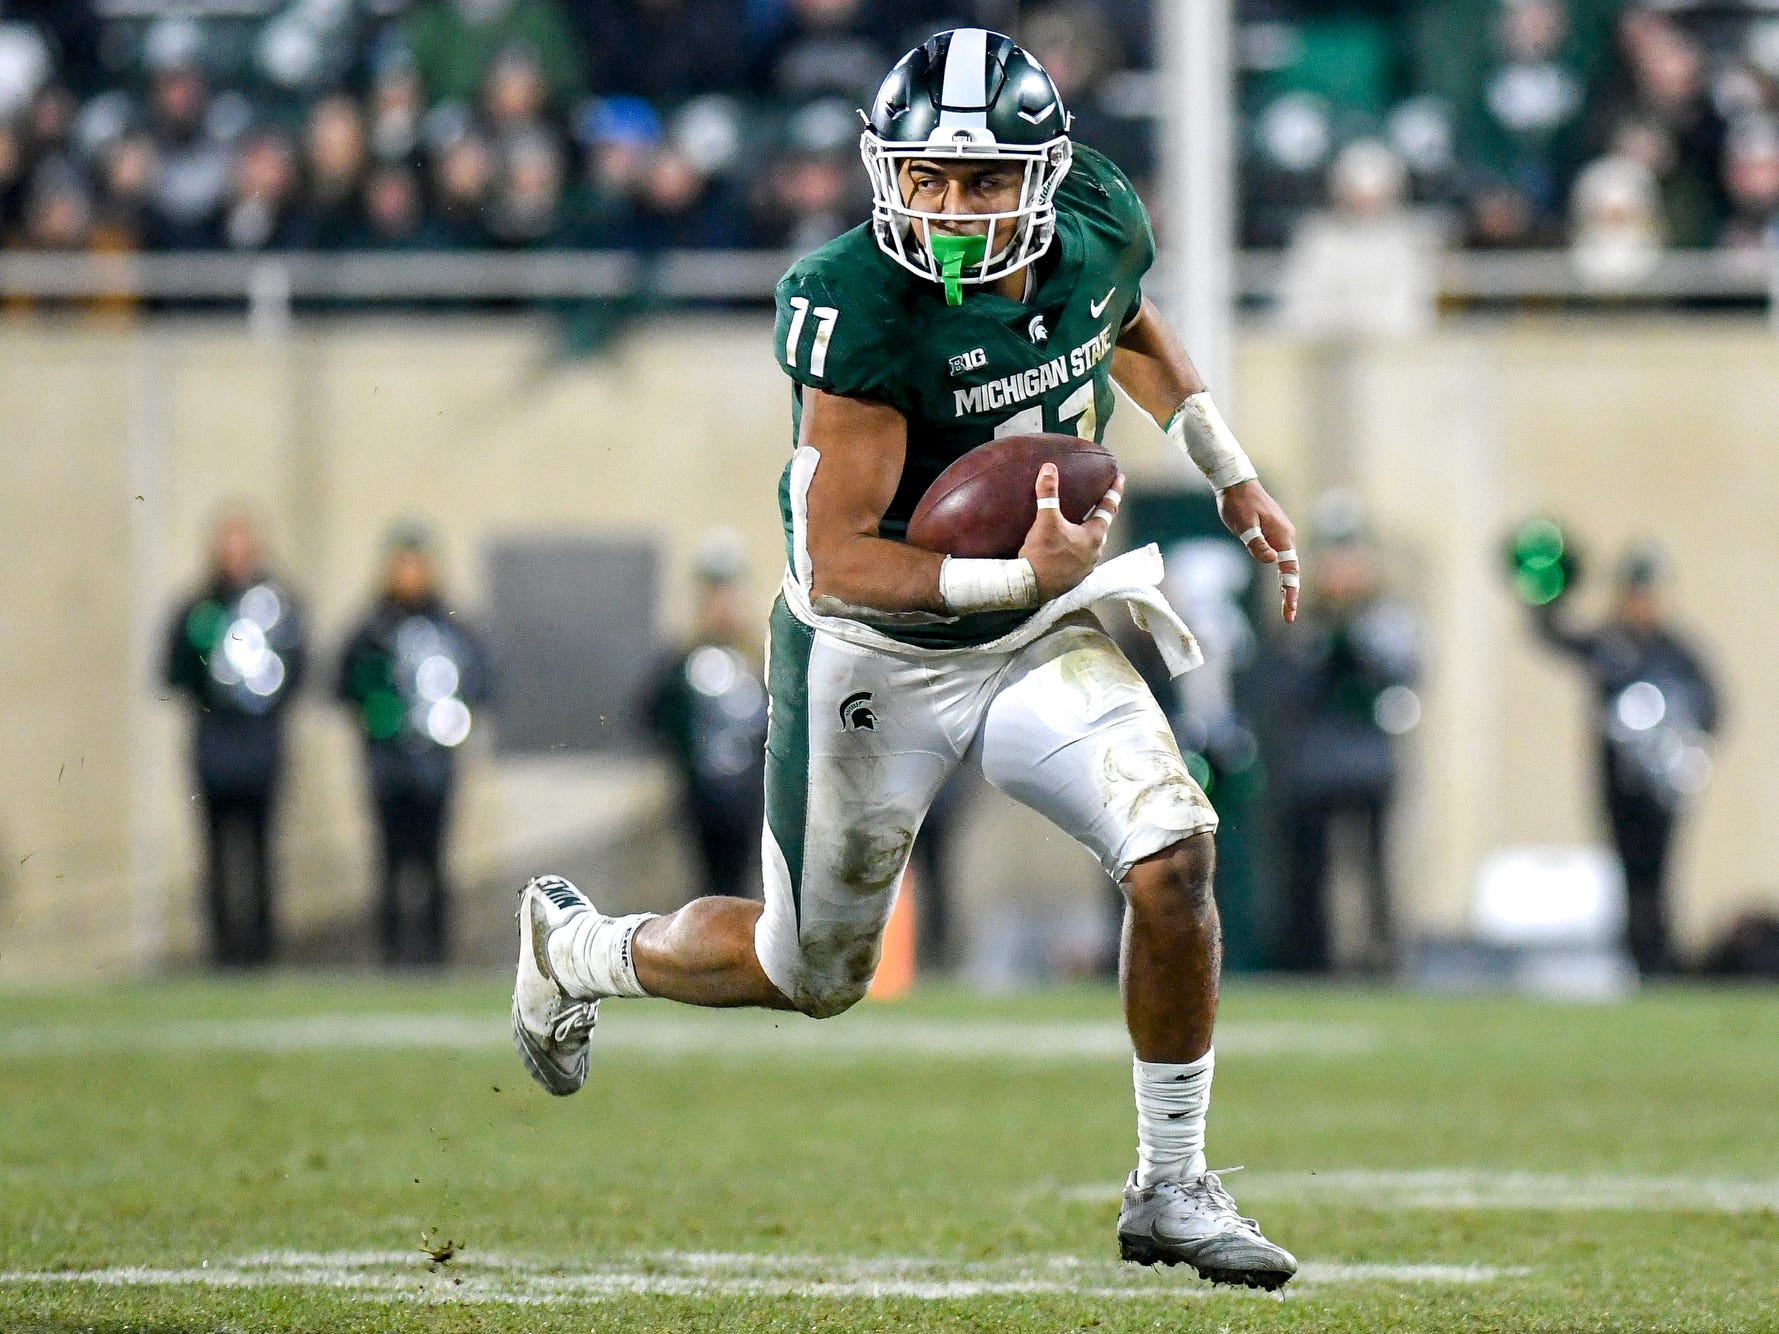 Michigan State's Connor Heyward runs after a catch during the second quarter on Saturday, Nov. 24, 2018, at Spartan Stadium in East Lansing.